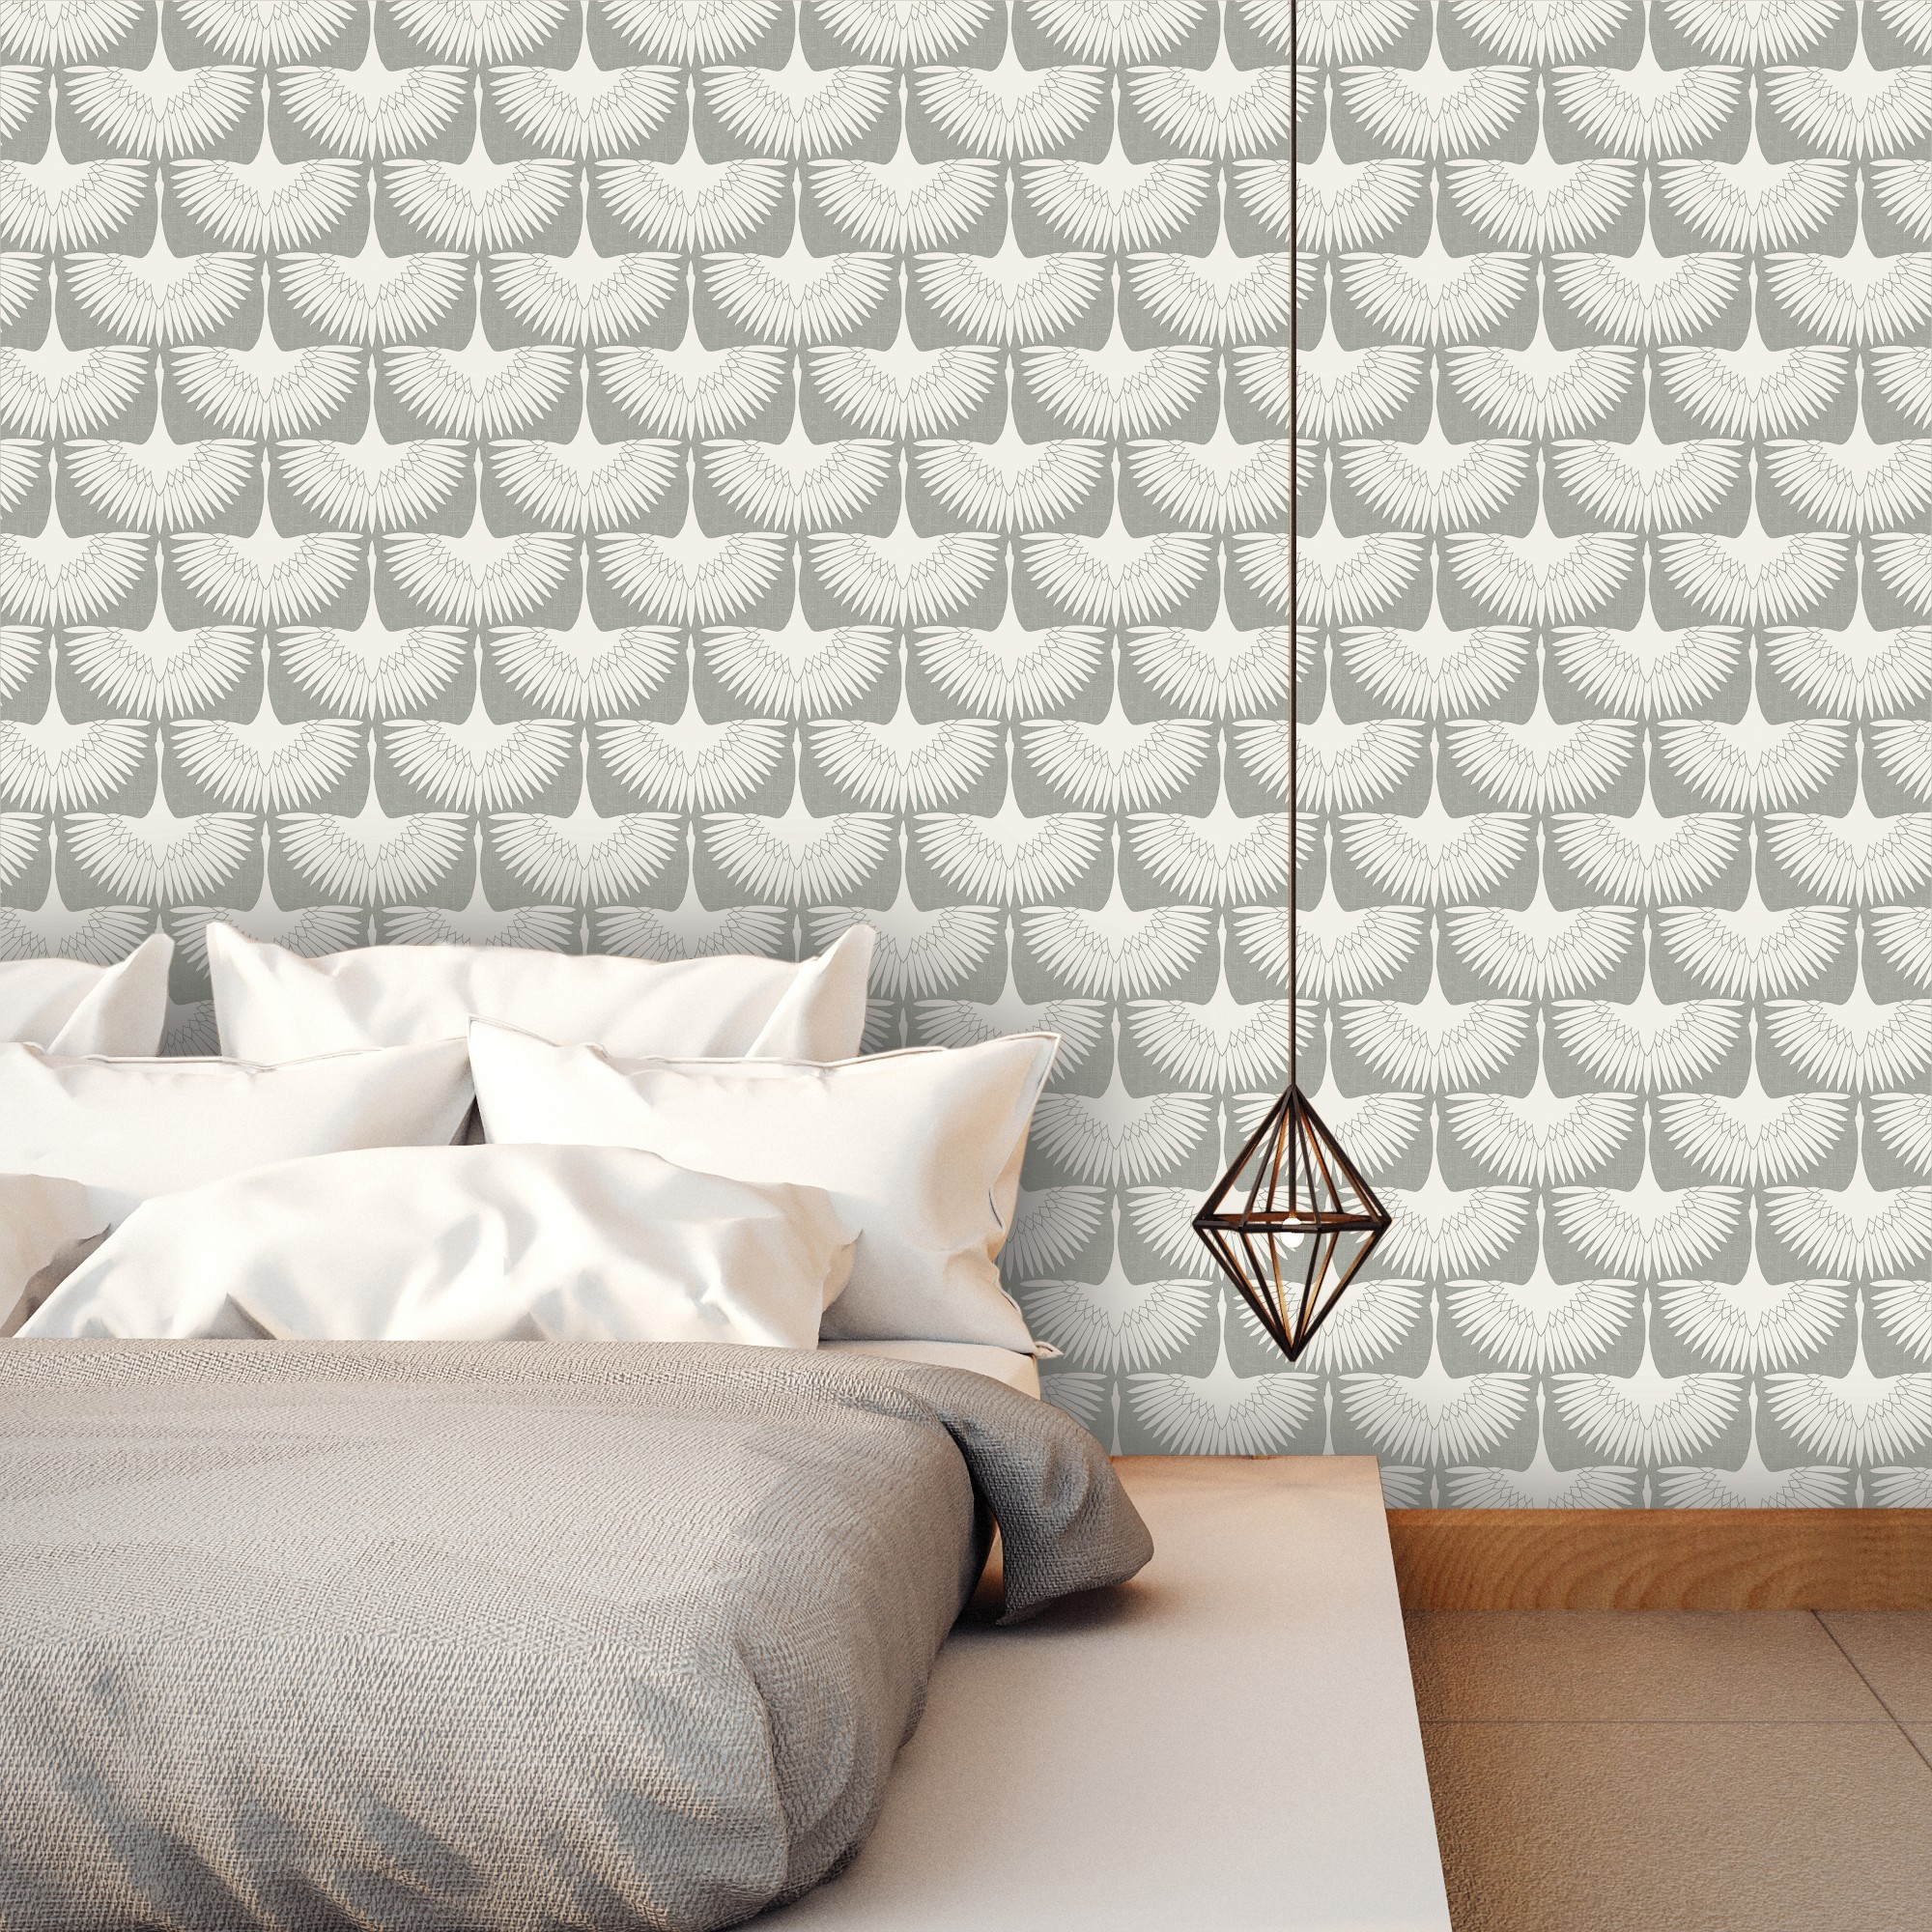 Feather Flock Self Adhesive Removable Wallpaper By Genevieve Gorder Chalk Gray